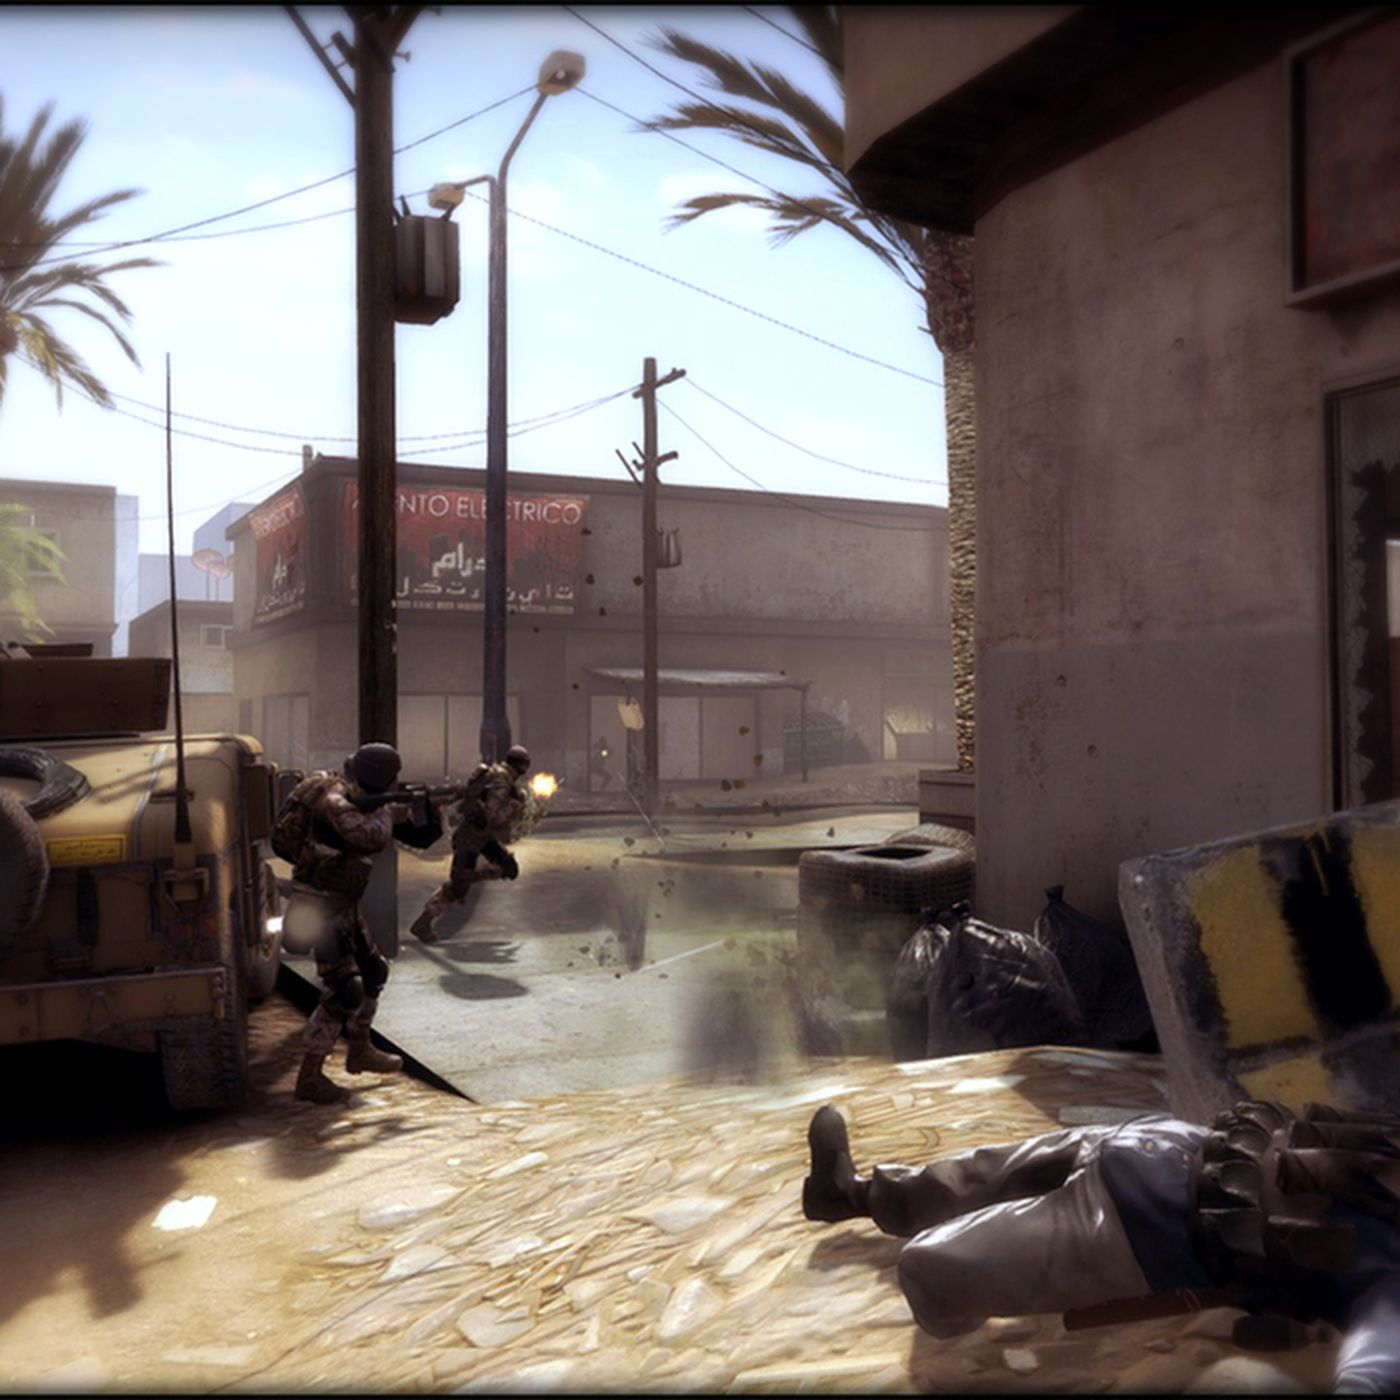 From mod to game: Insurgency devs turn pro, but maintain community